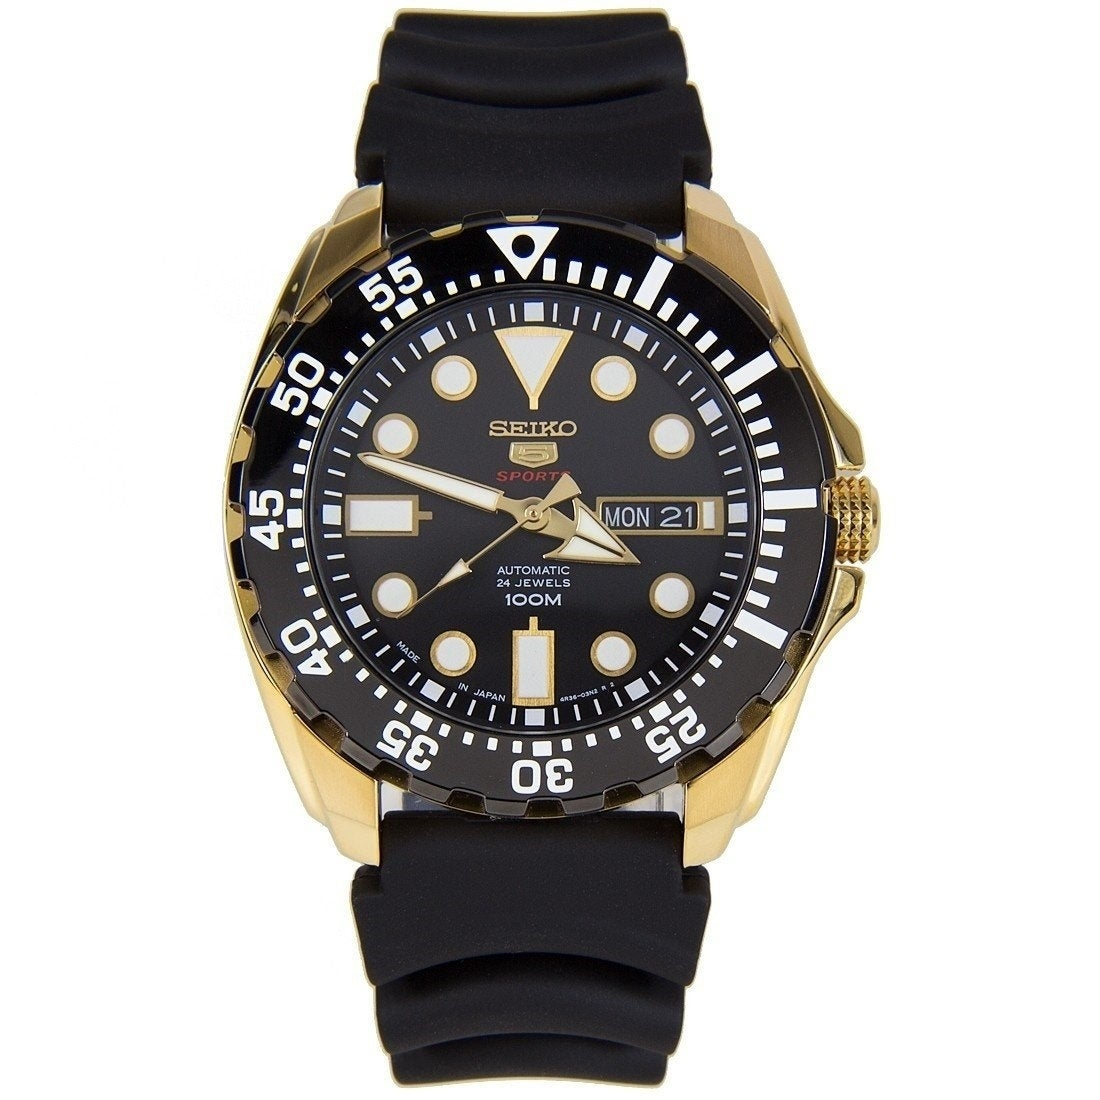 b80afcbcb Shop Seiko Men's SRP608J1 'Sports' Black Resin Watch - Free Shipping Today  - Overstock - 28014442